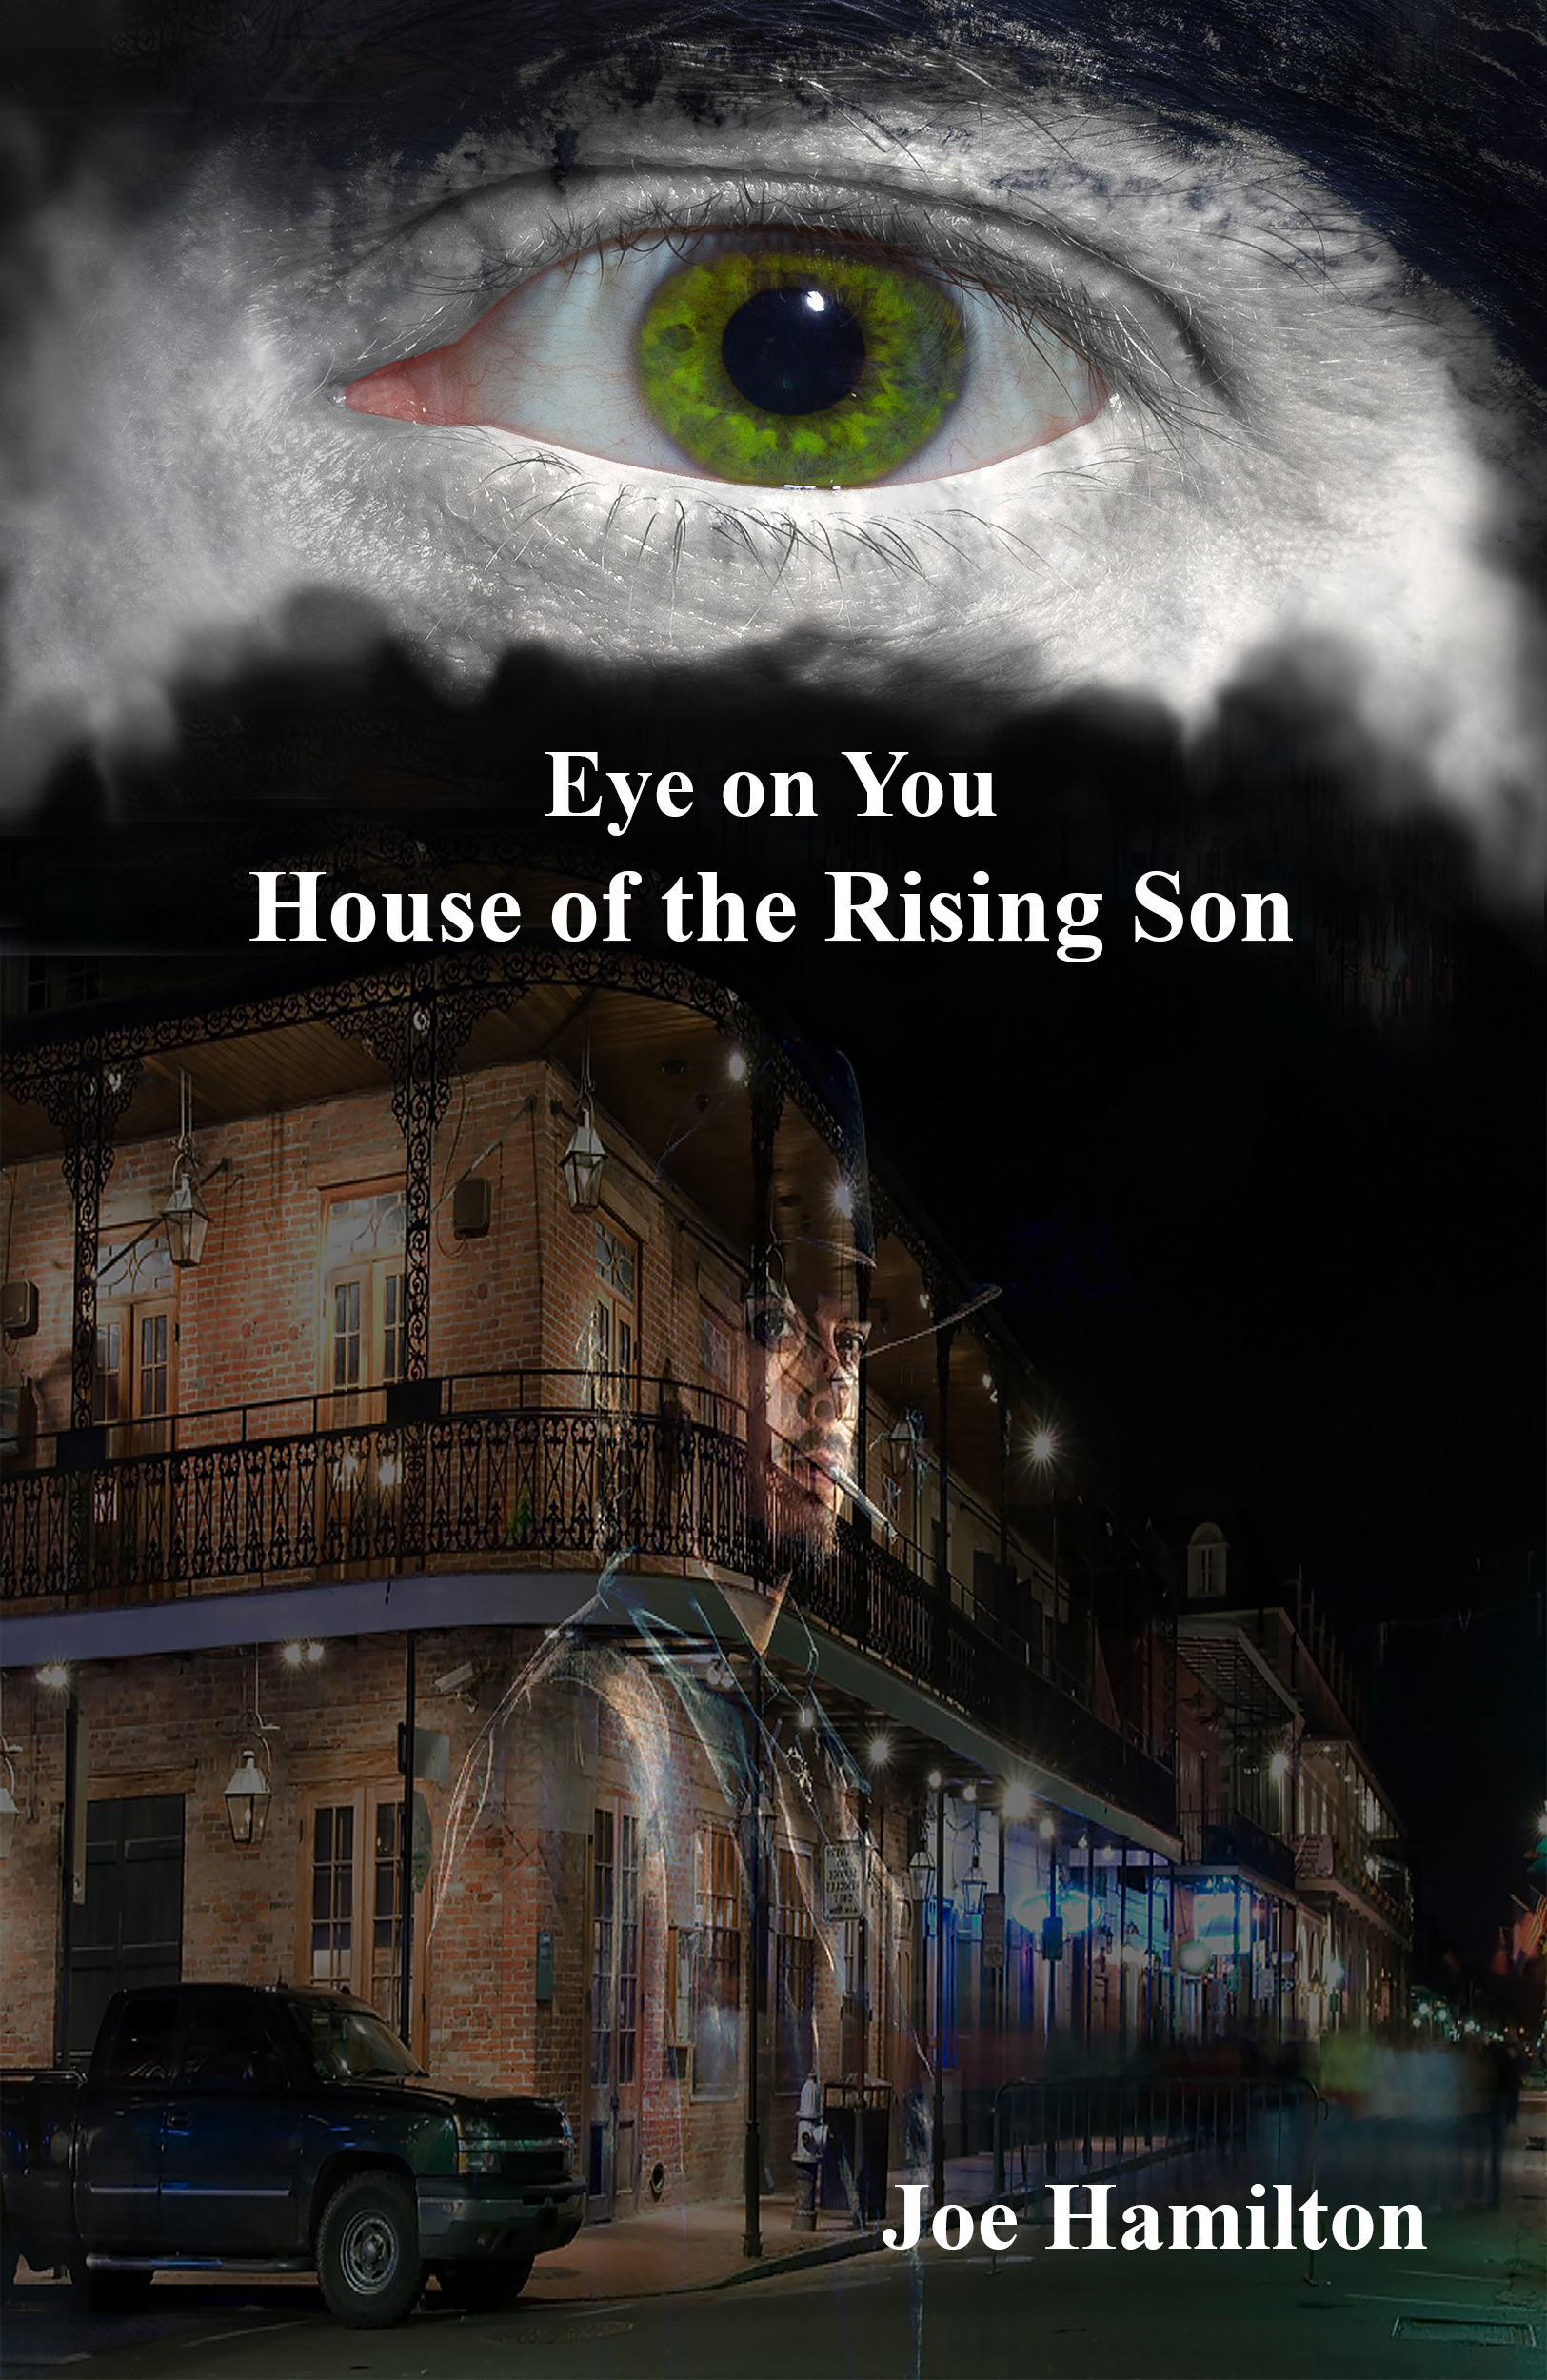 Eye on You – House of the Rising Son